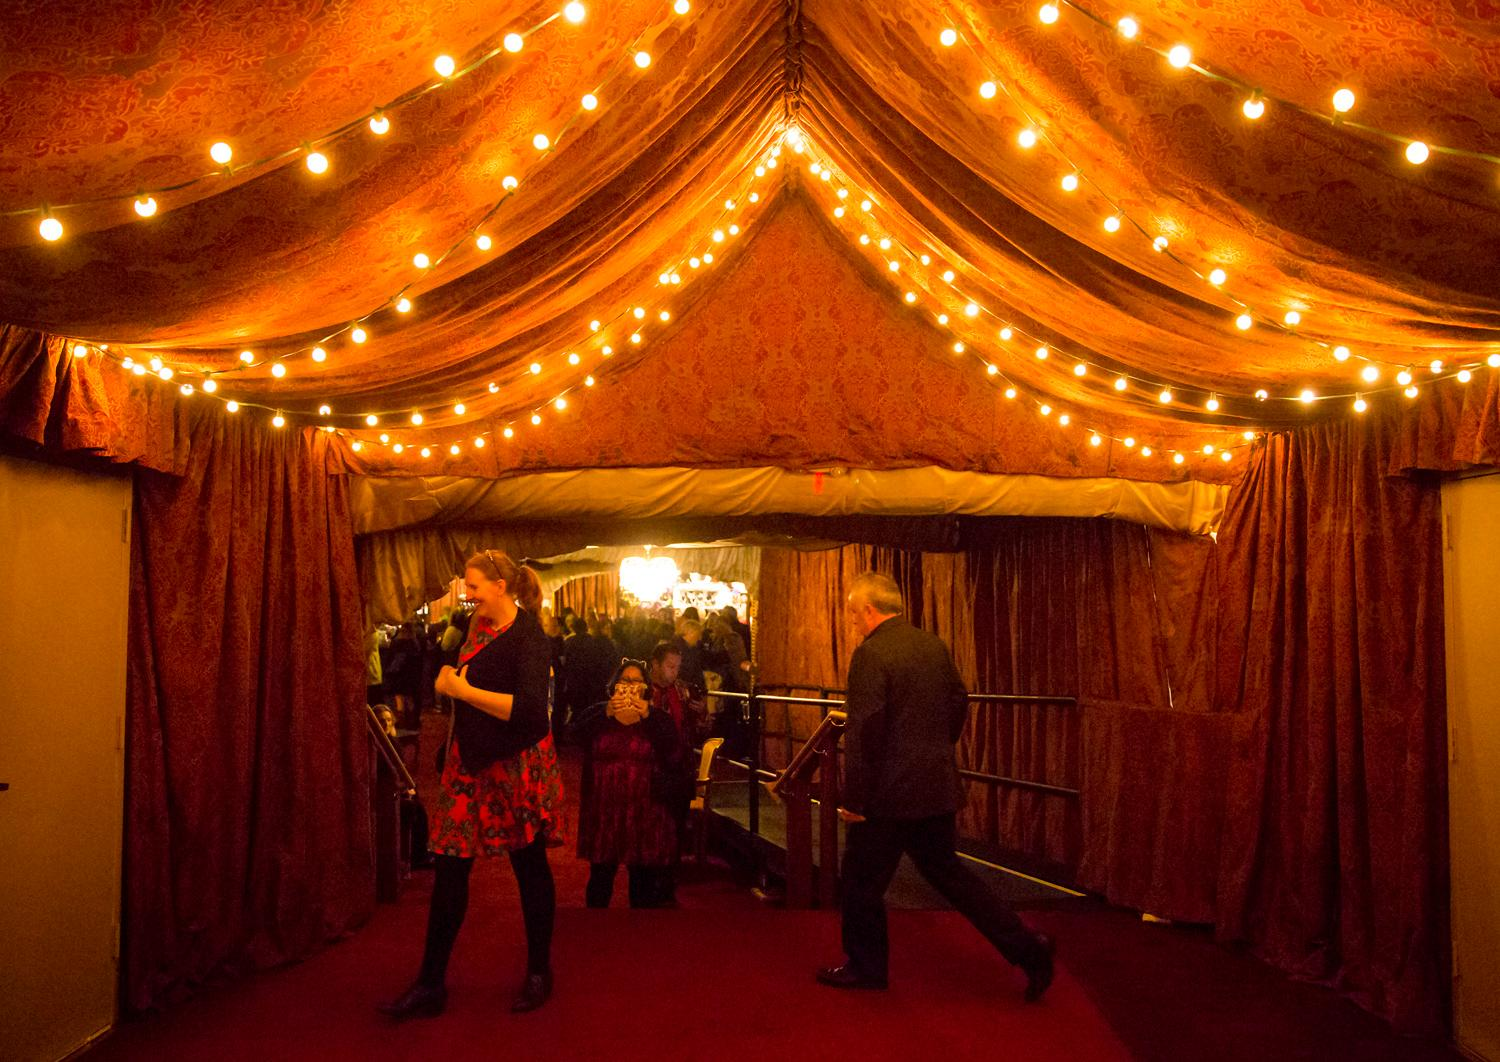 Teatro ZinZanni is a three-hour dinner show full of international cirque, comedy, cabaret, and a multi-course menu design by James Beard award-winning chef Jason Wilson. (Sy Bean / Seattle Refined)